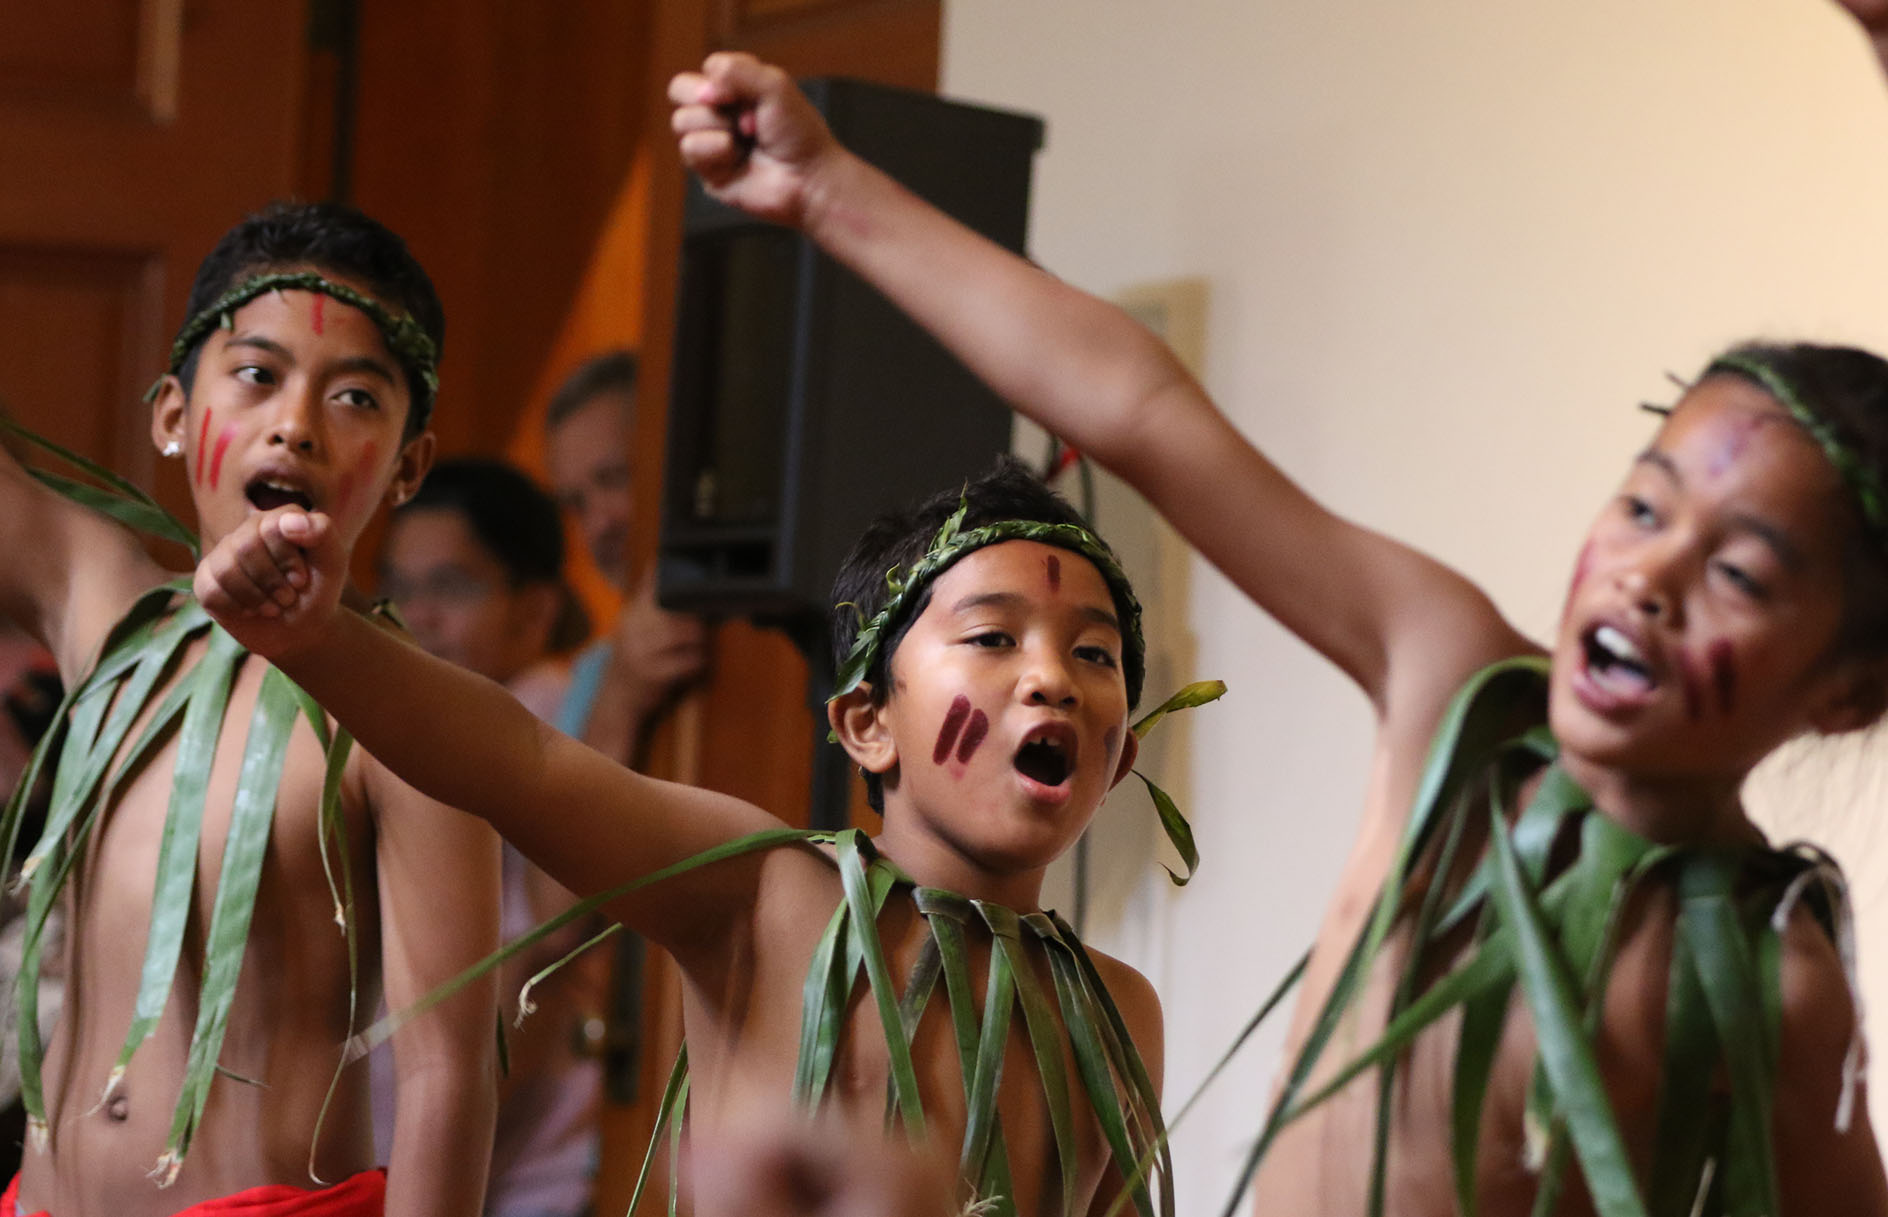 <p>Young dancers from the Pacific Voices group performed at the &#8220;Celebrate Micronesia&#8221; event at the Honolulu Museum of Art School in March, which celebrated the broad diversity of Micronesian cultures.</p>